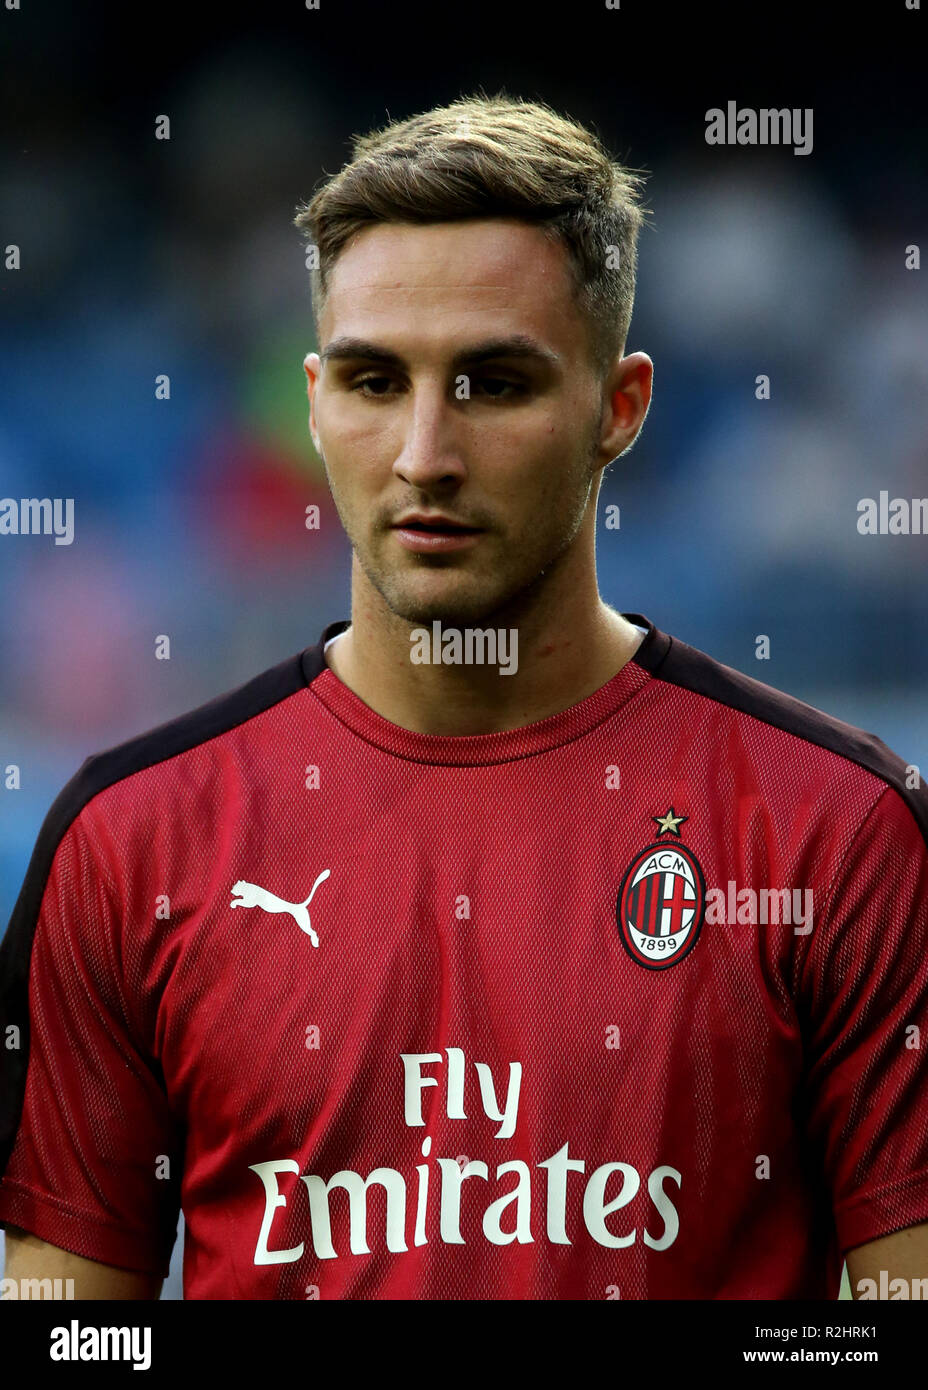 Stefan Simic High Resolution Stock Photography and Images - Alamy